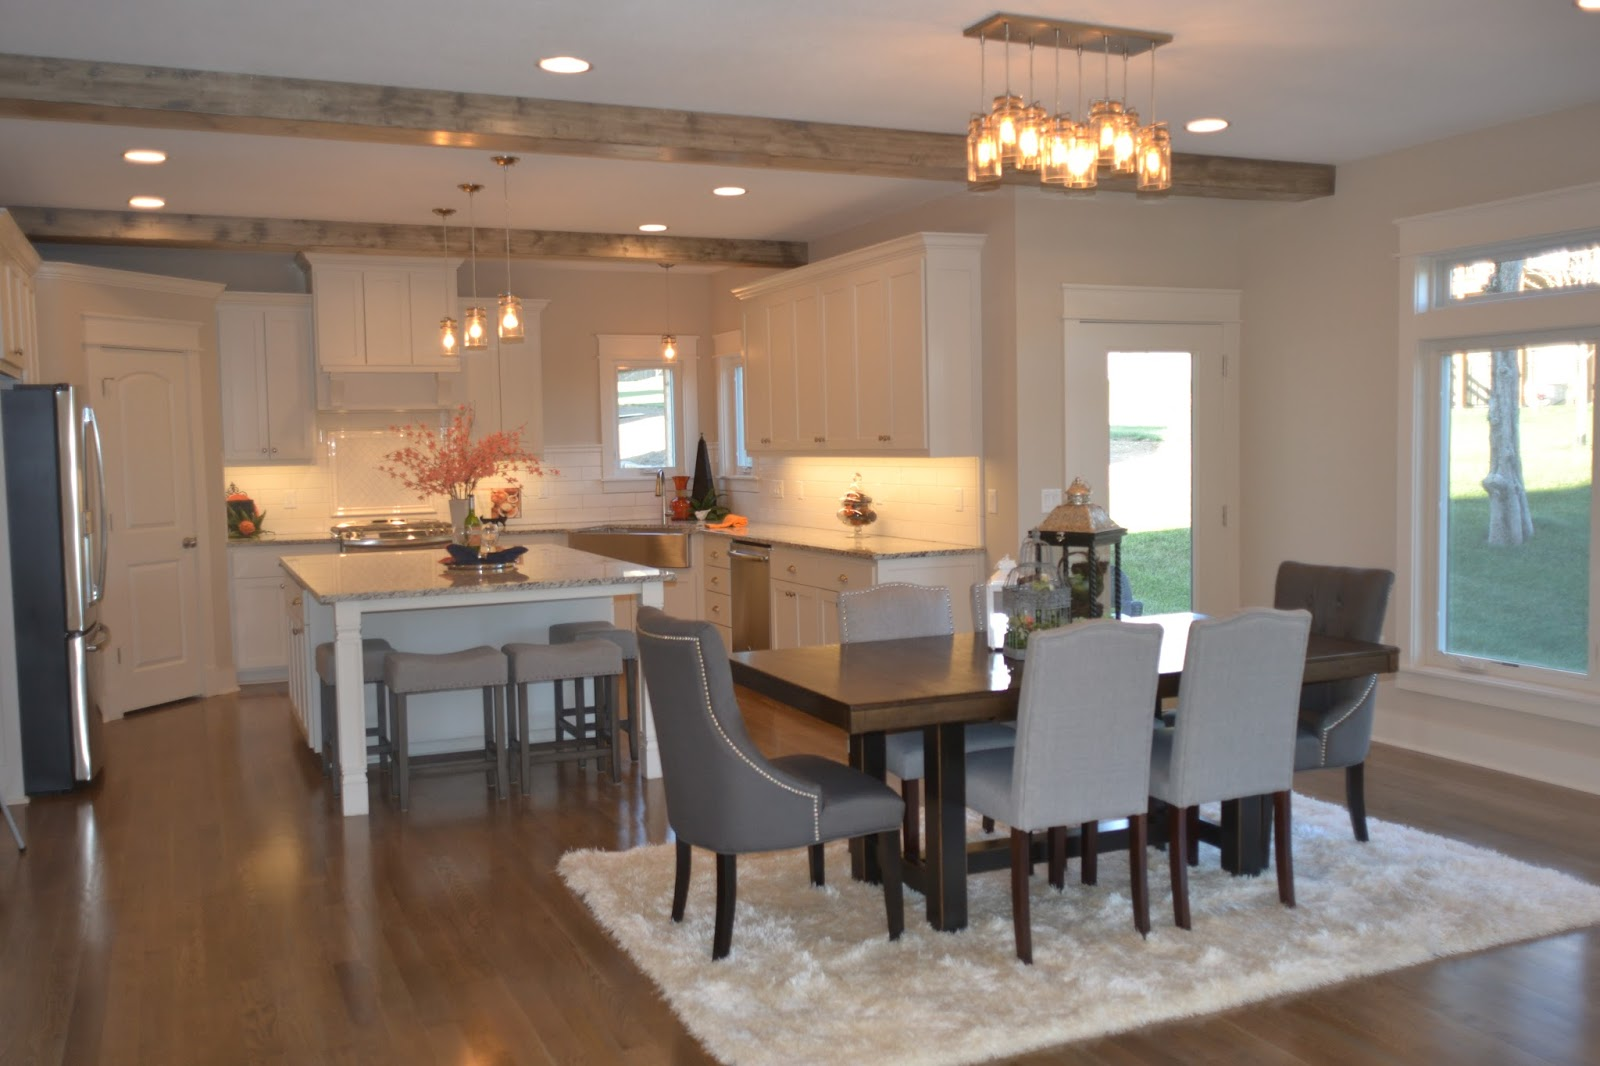 Stylish Staging 908 Silver Rain Lawrence Ks Beautiful New Home Just Staged By